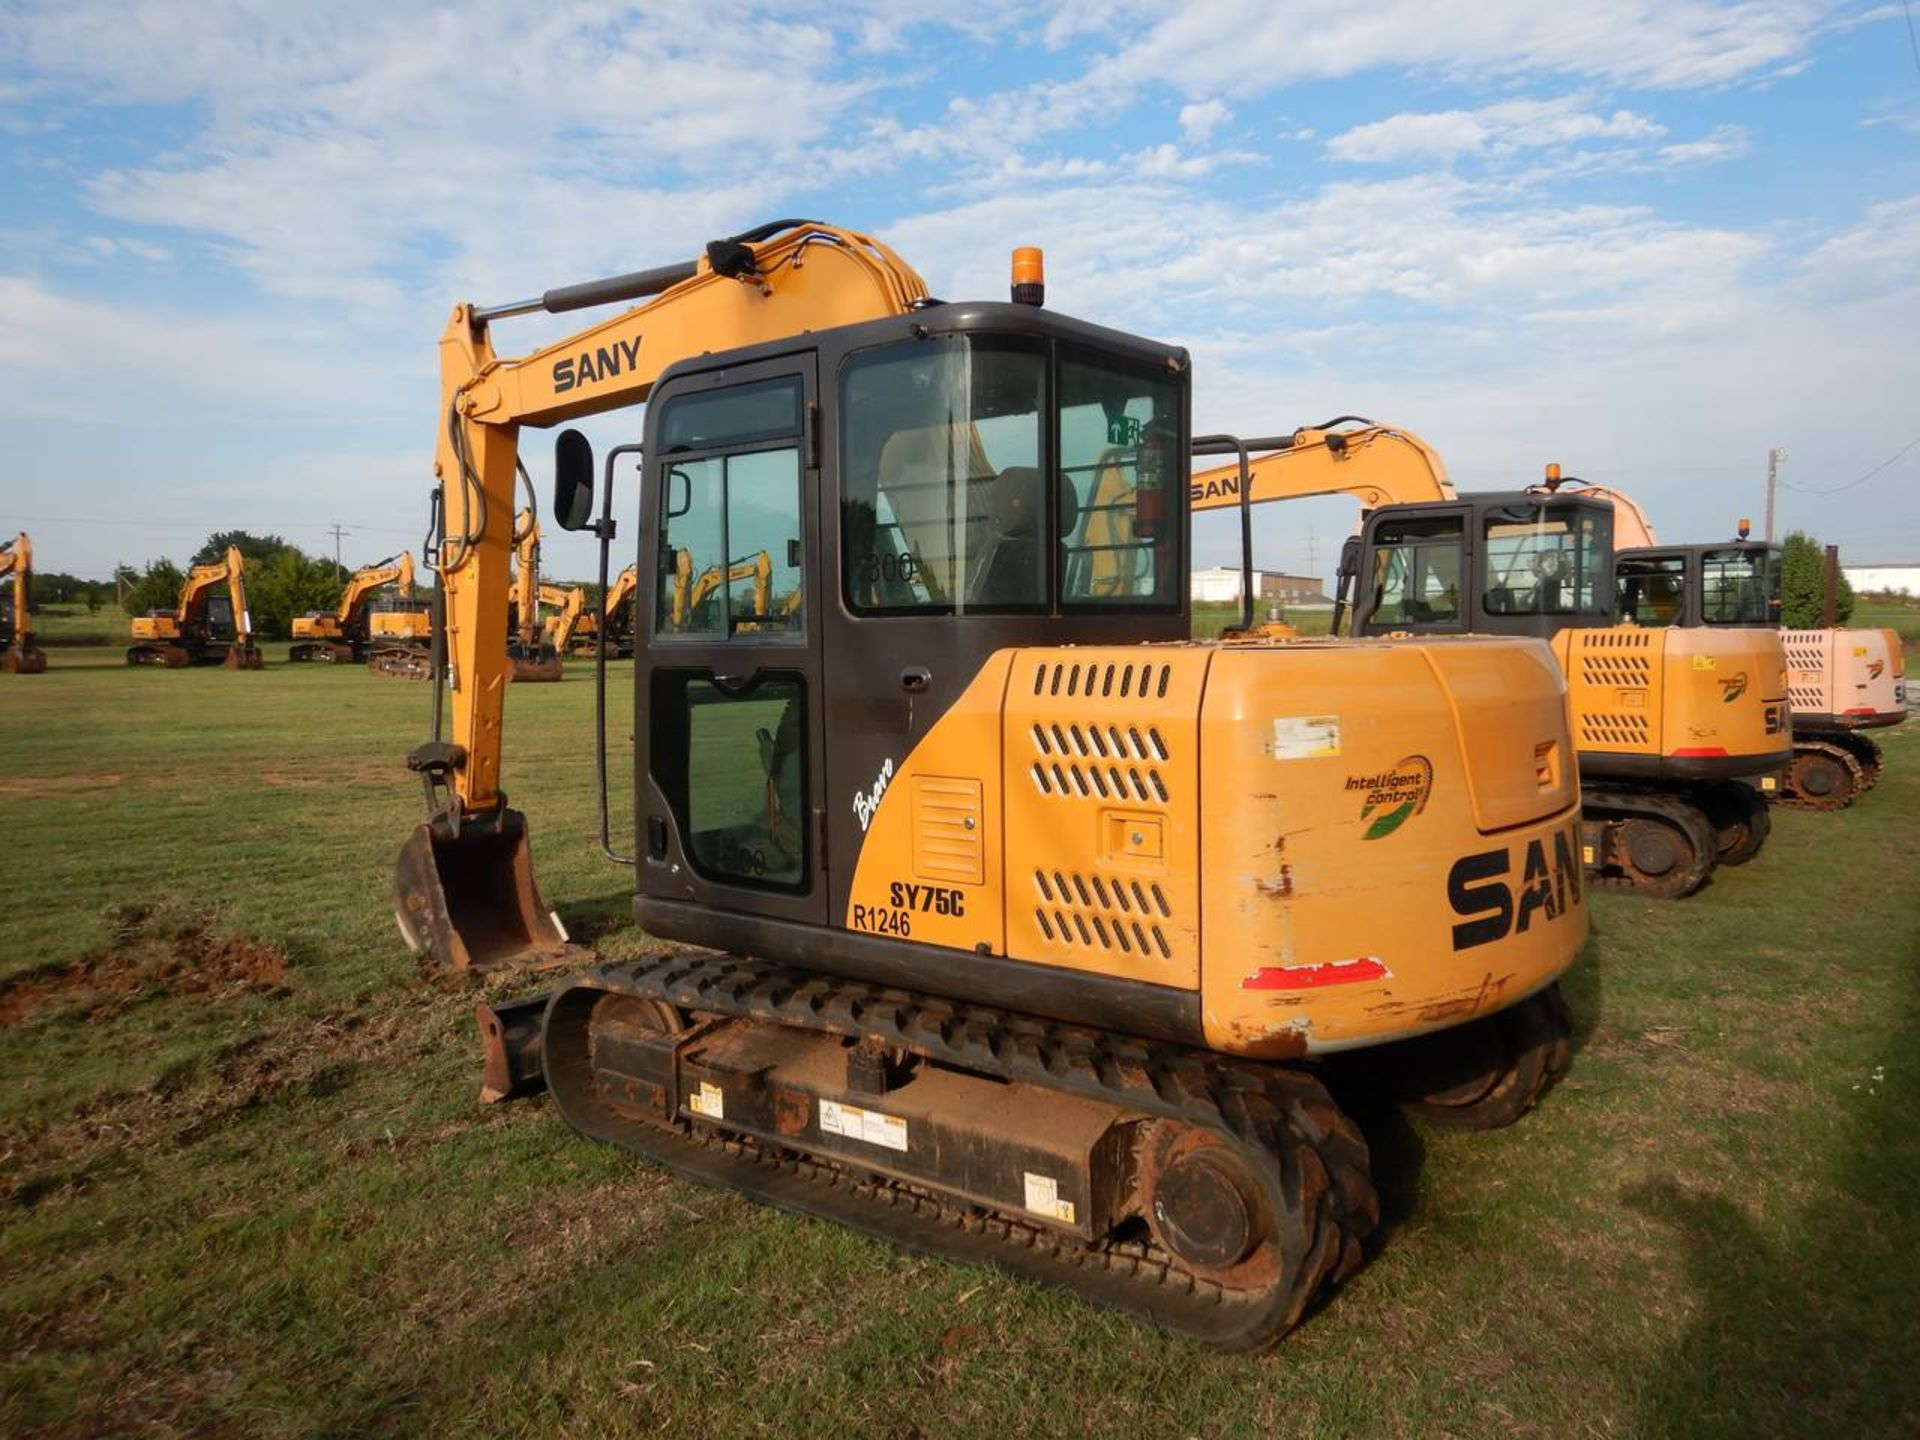 Lot 26 - 2016 SANY SY75R Mini Excavator